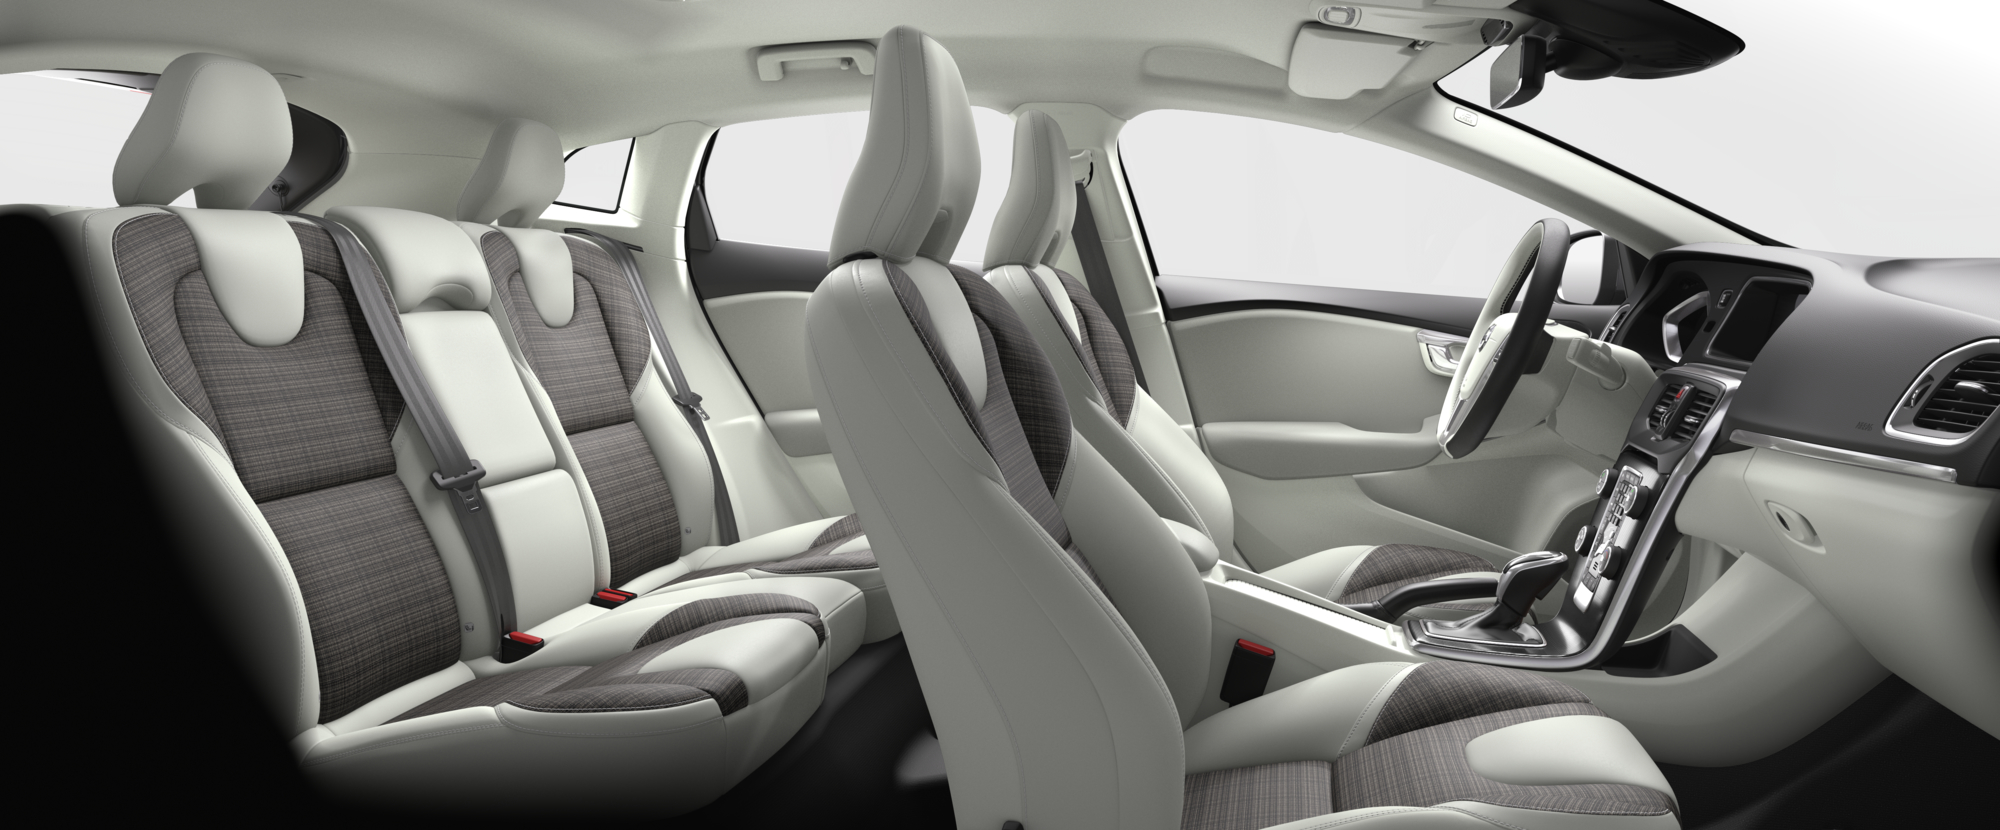 Interior shot of the Volvo V40 with Blond City Weave Textile Seats